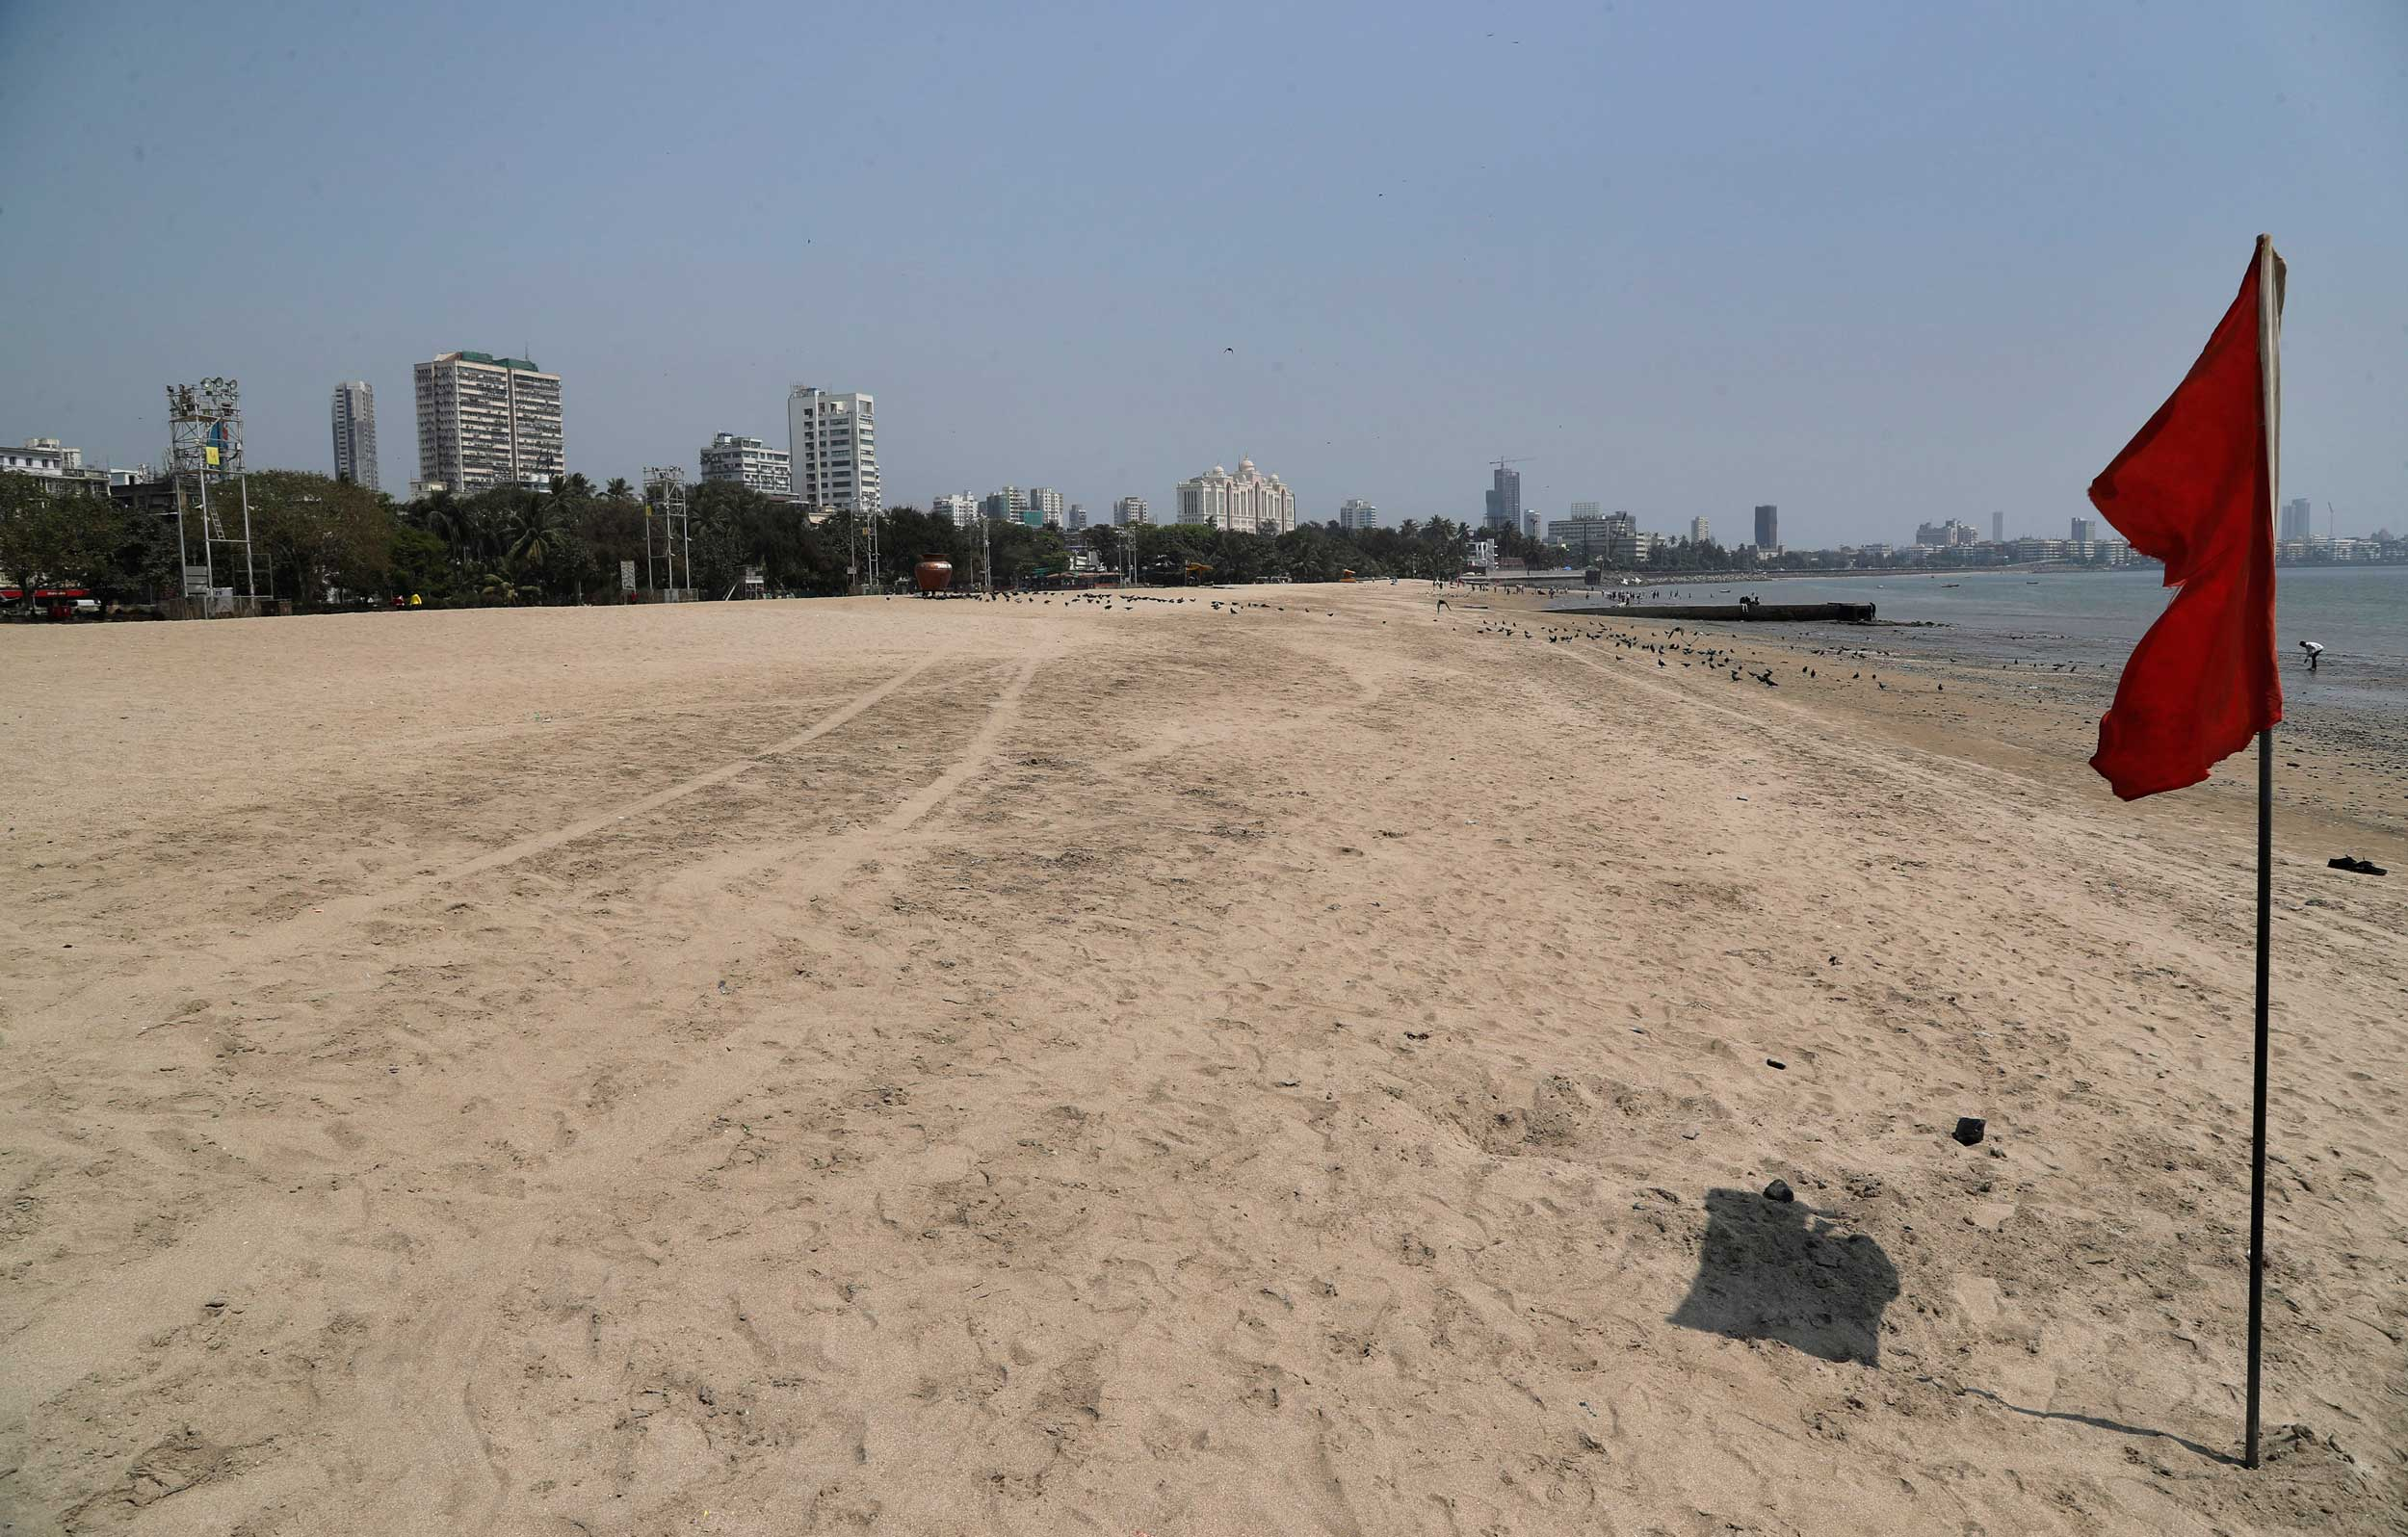 The deserted Girgaum Chowpatty beach after the Maharashtra government banned public gatherings to avoid the spreading of the coronavirus in Mumbai on Tuesday.